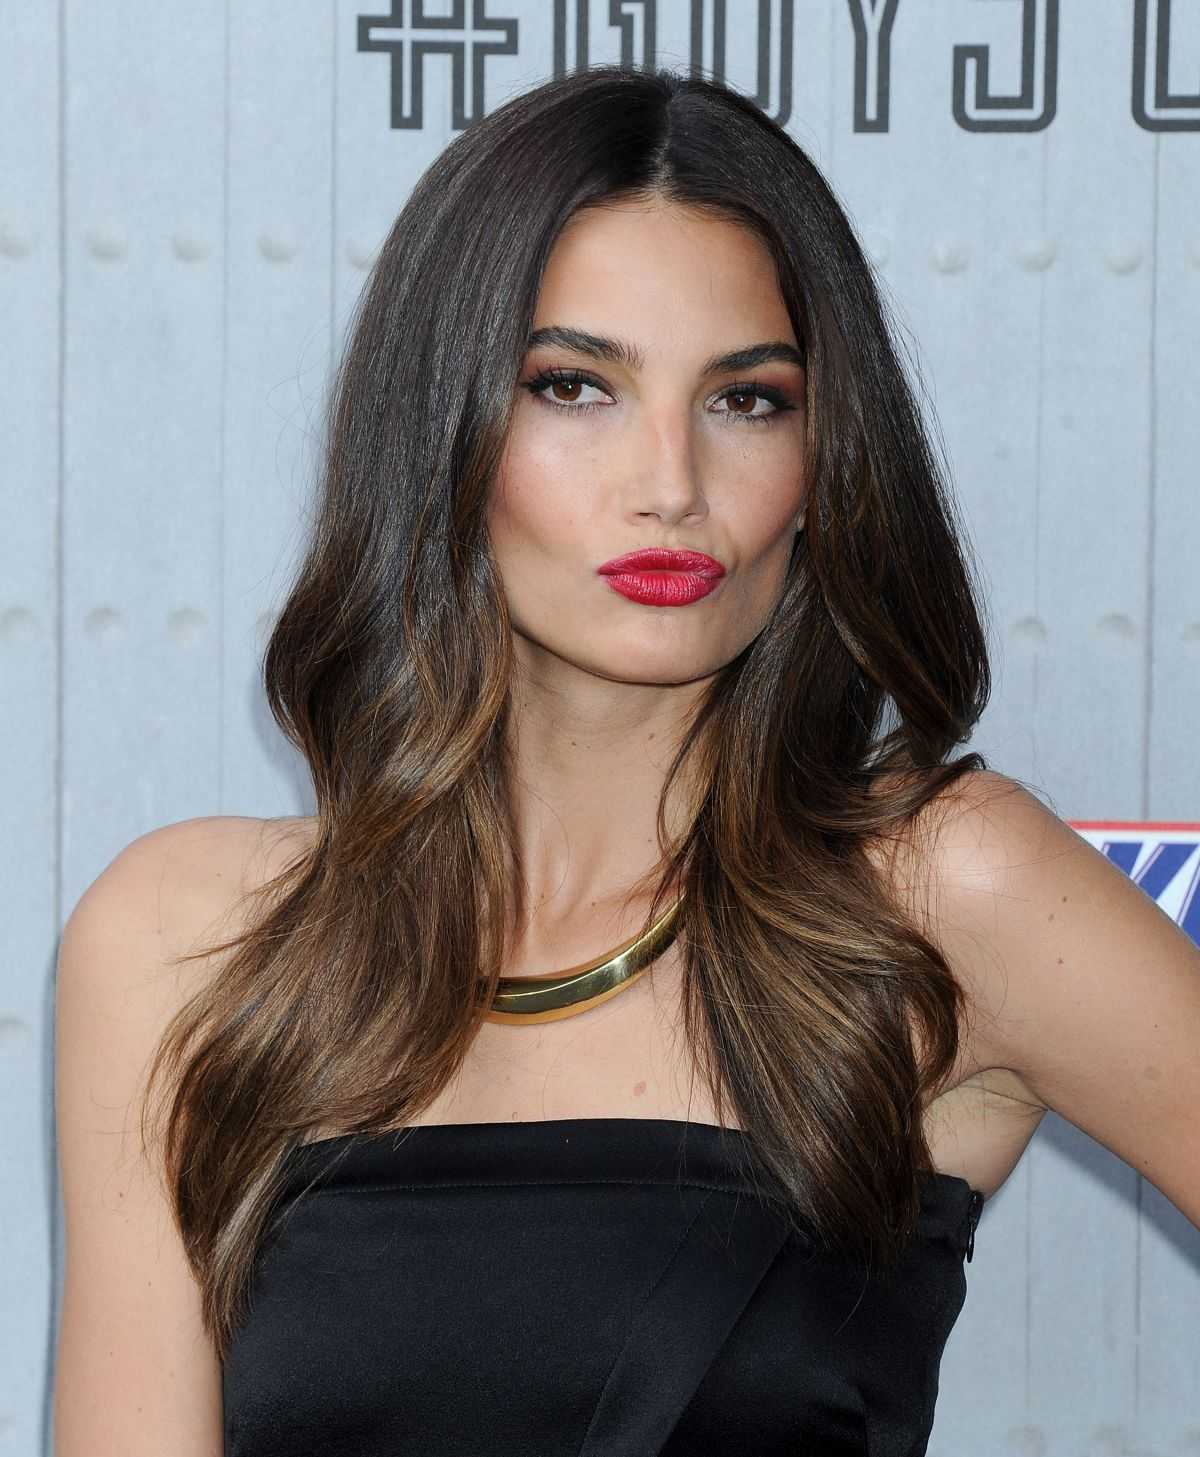 LILY ALDRIDGE at Spike TV's Guys Choice Awards in Culver City